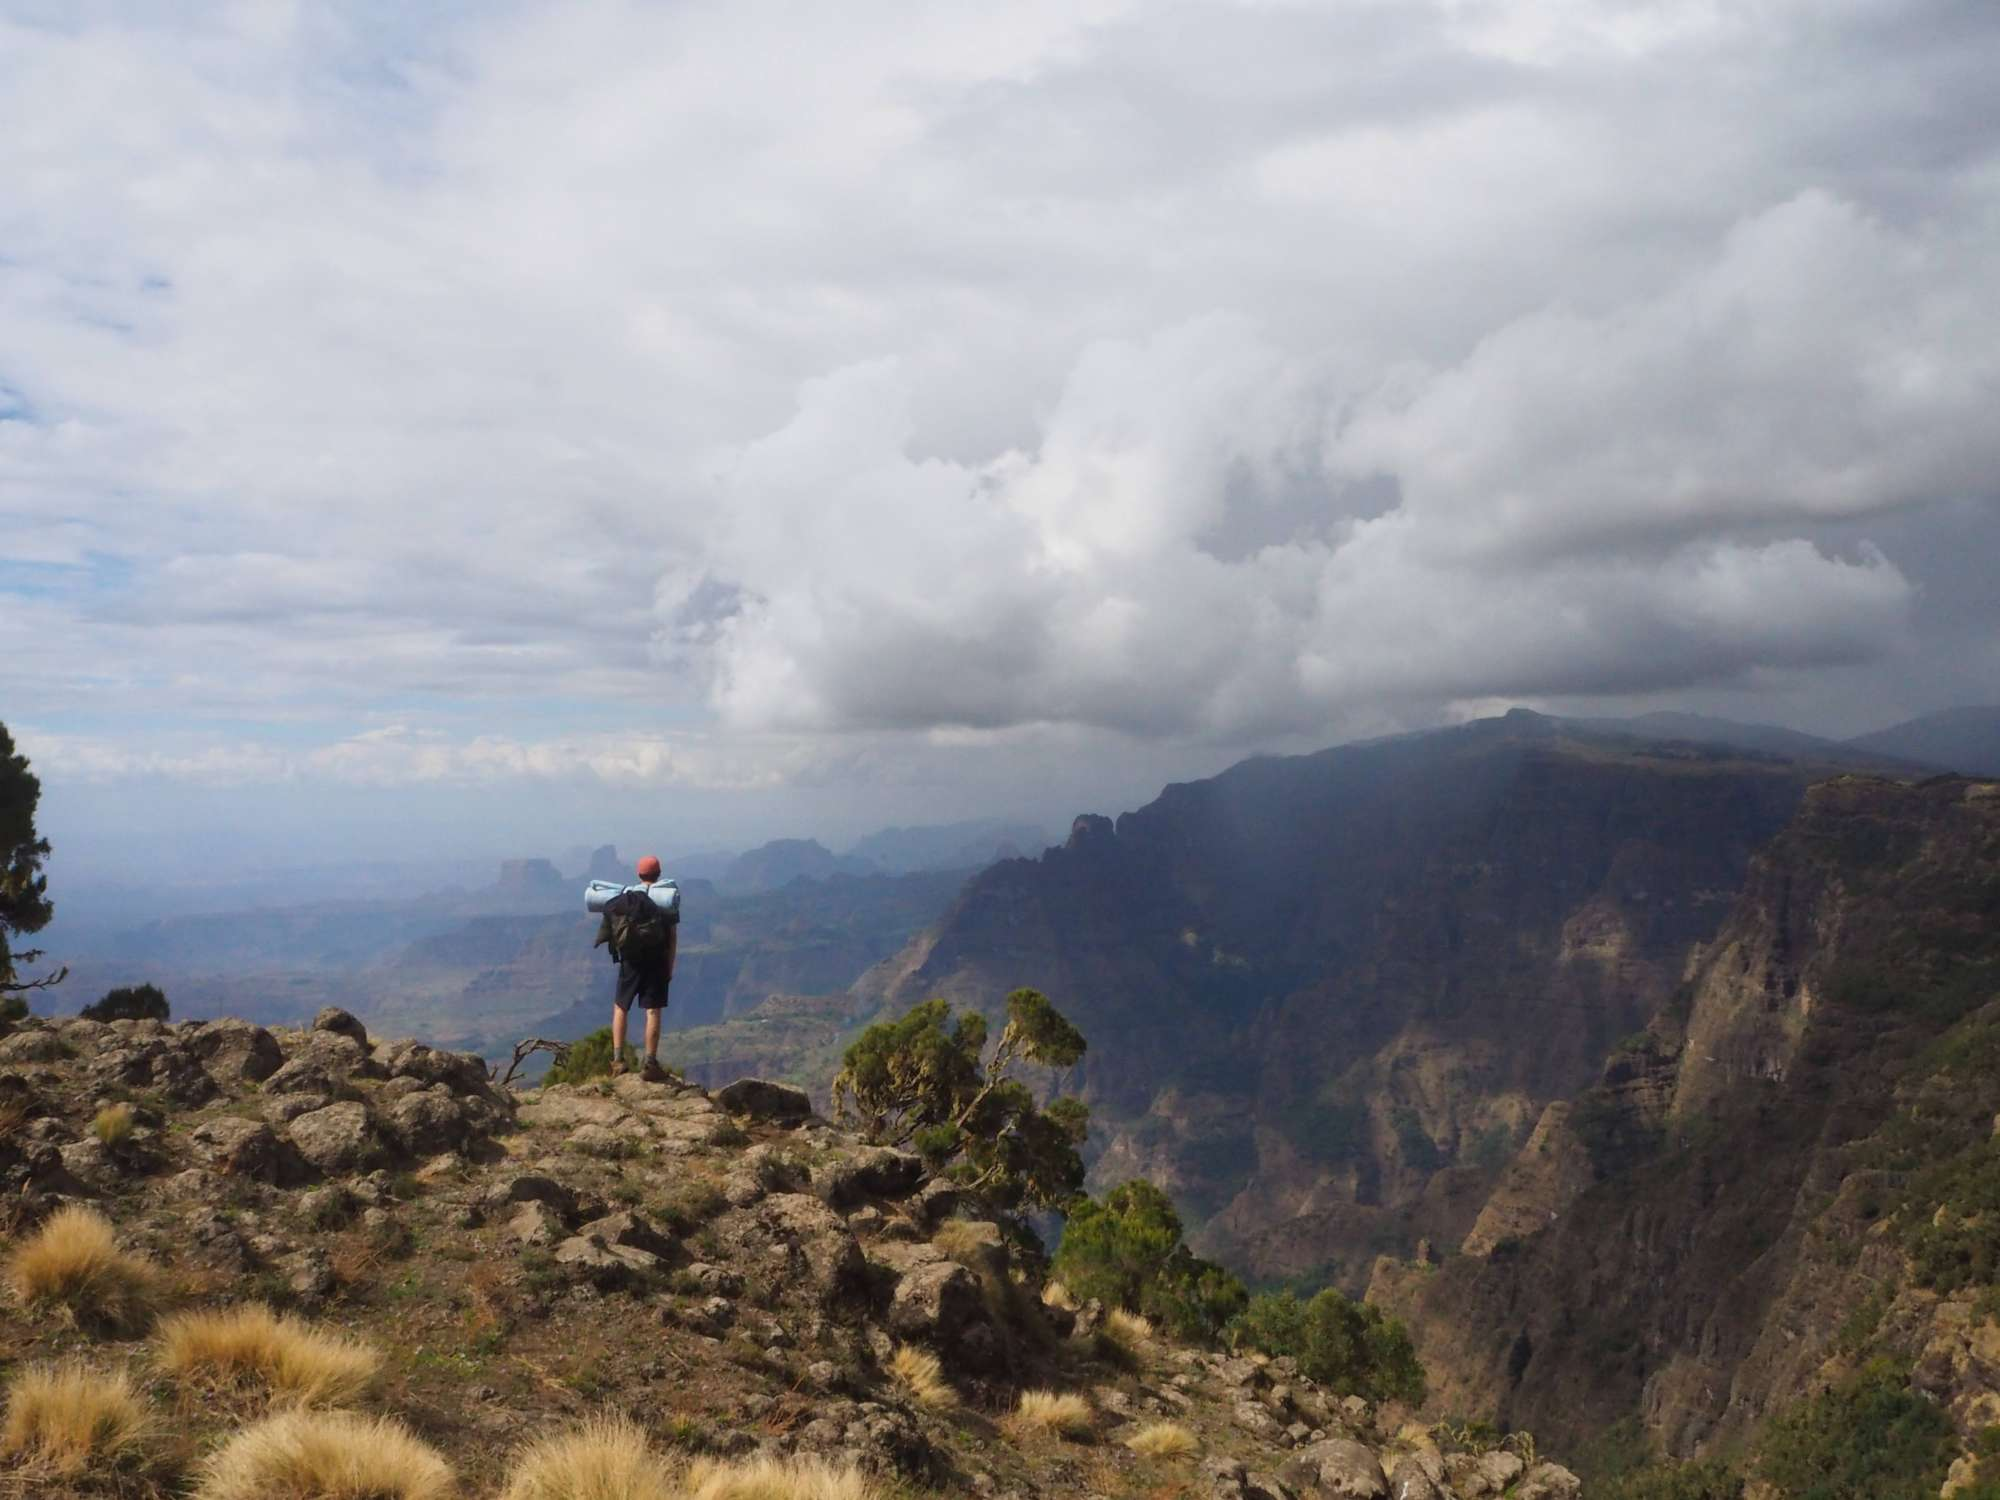 Trekking-Ethiopias-Simien-Mountains-Mafia-AK-47s-and-a-Park-at-Risk-backpacker-view